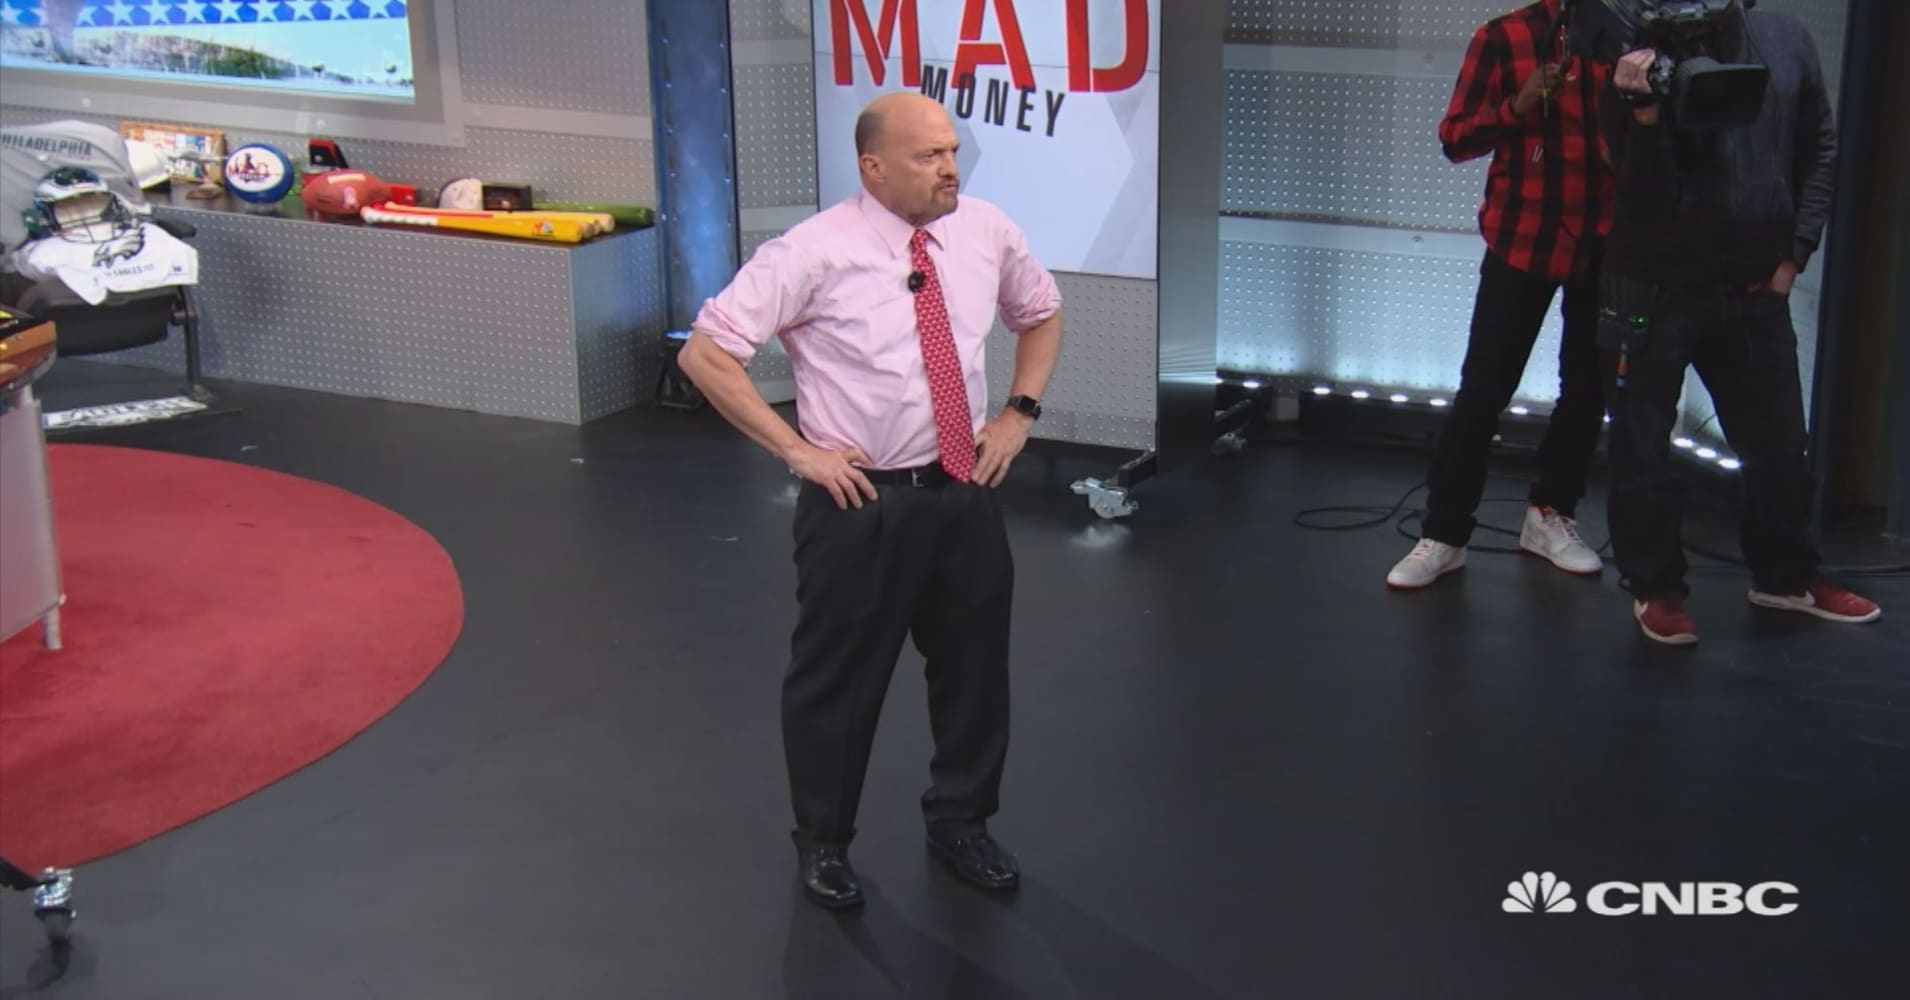 Behind the scenes at Mad Money's Veterans Day show: Q&A with Jim Cramer